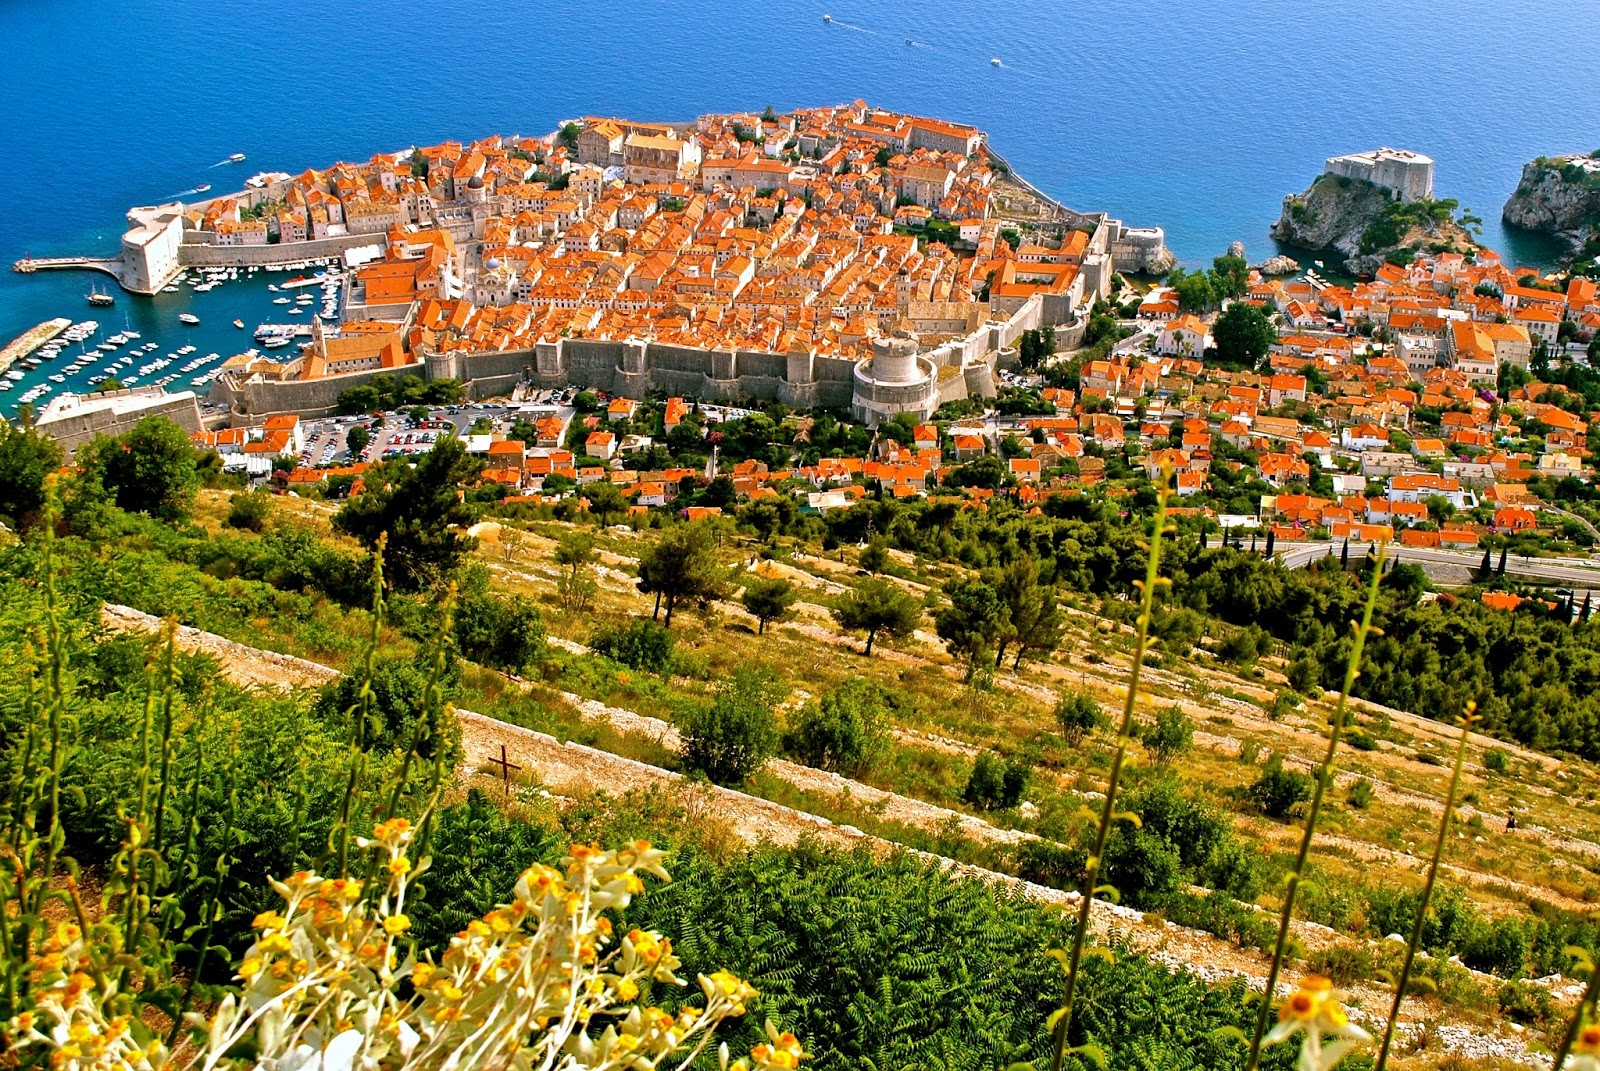 View of Dubrovnik from Mount Srdj